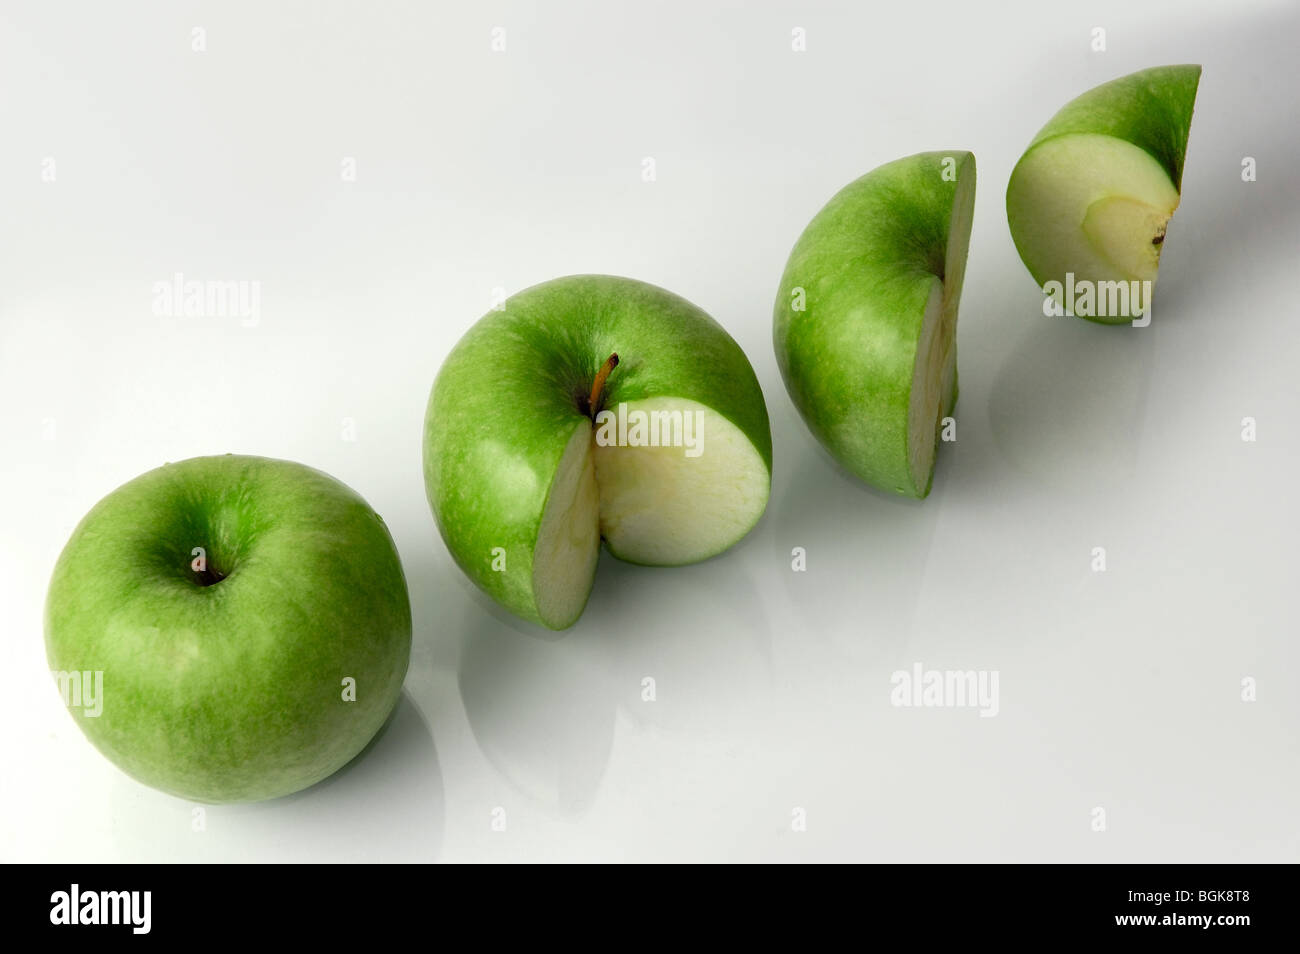 four green apples percentage concept profit or loss 100 75 50